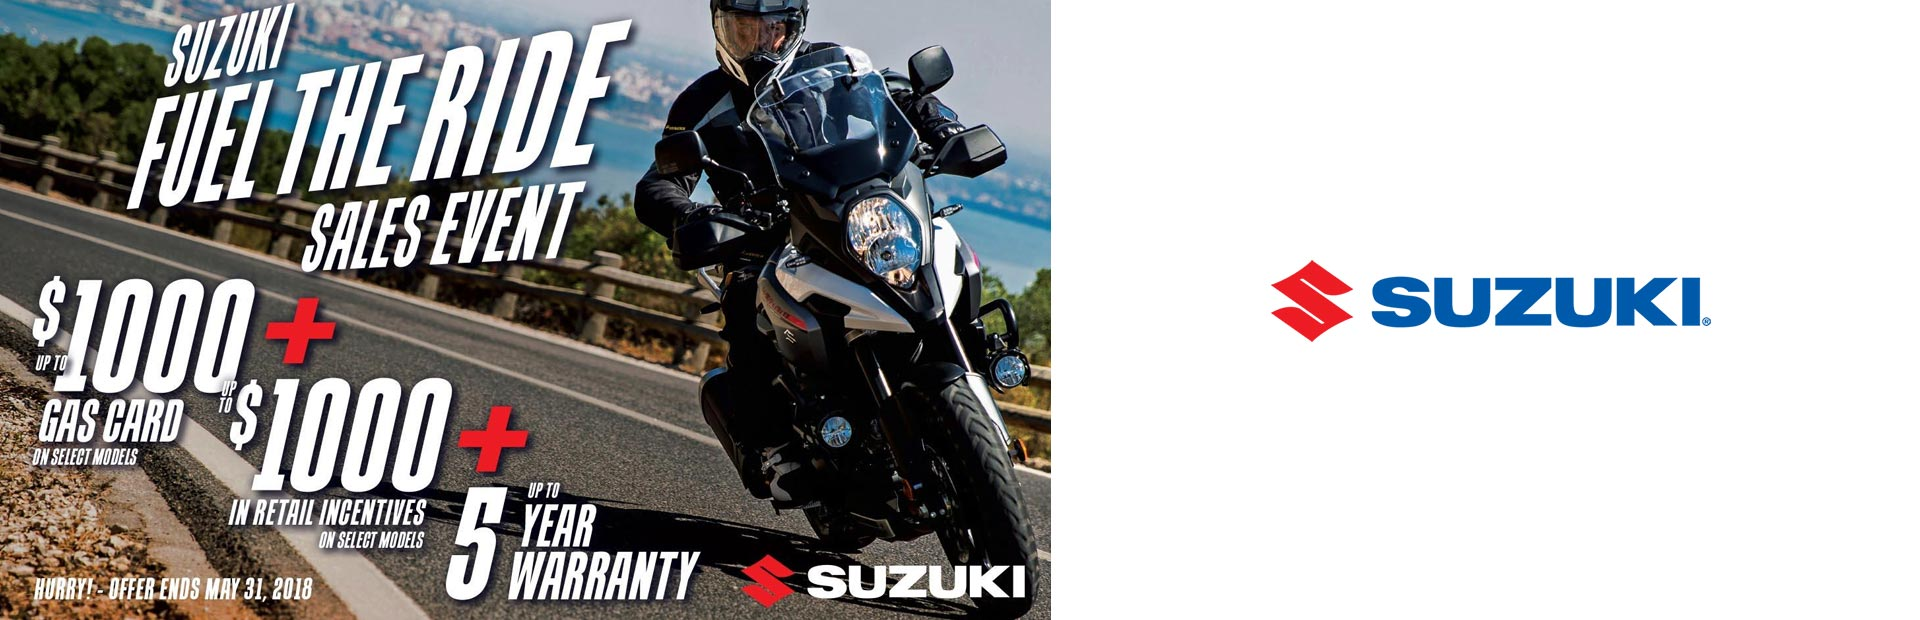 Suzuki: Suzuki Fuel the Ride Sales Event